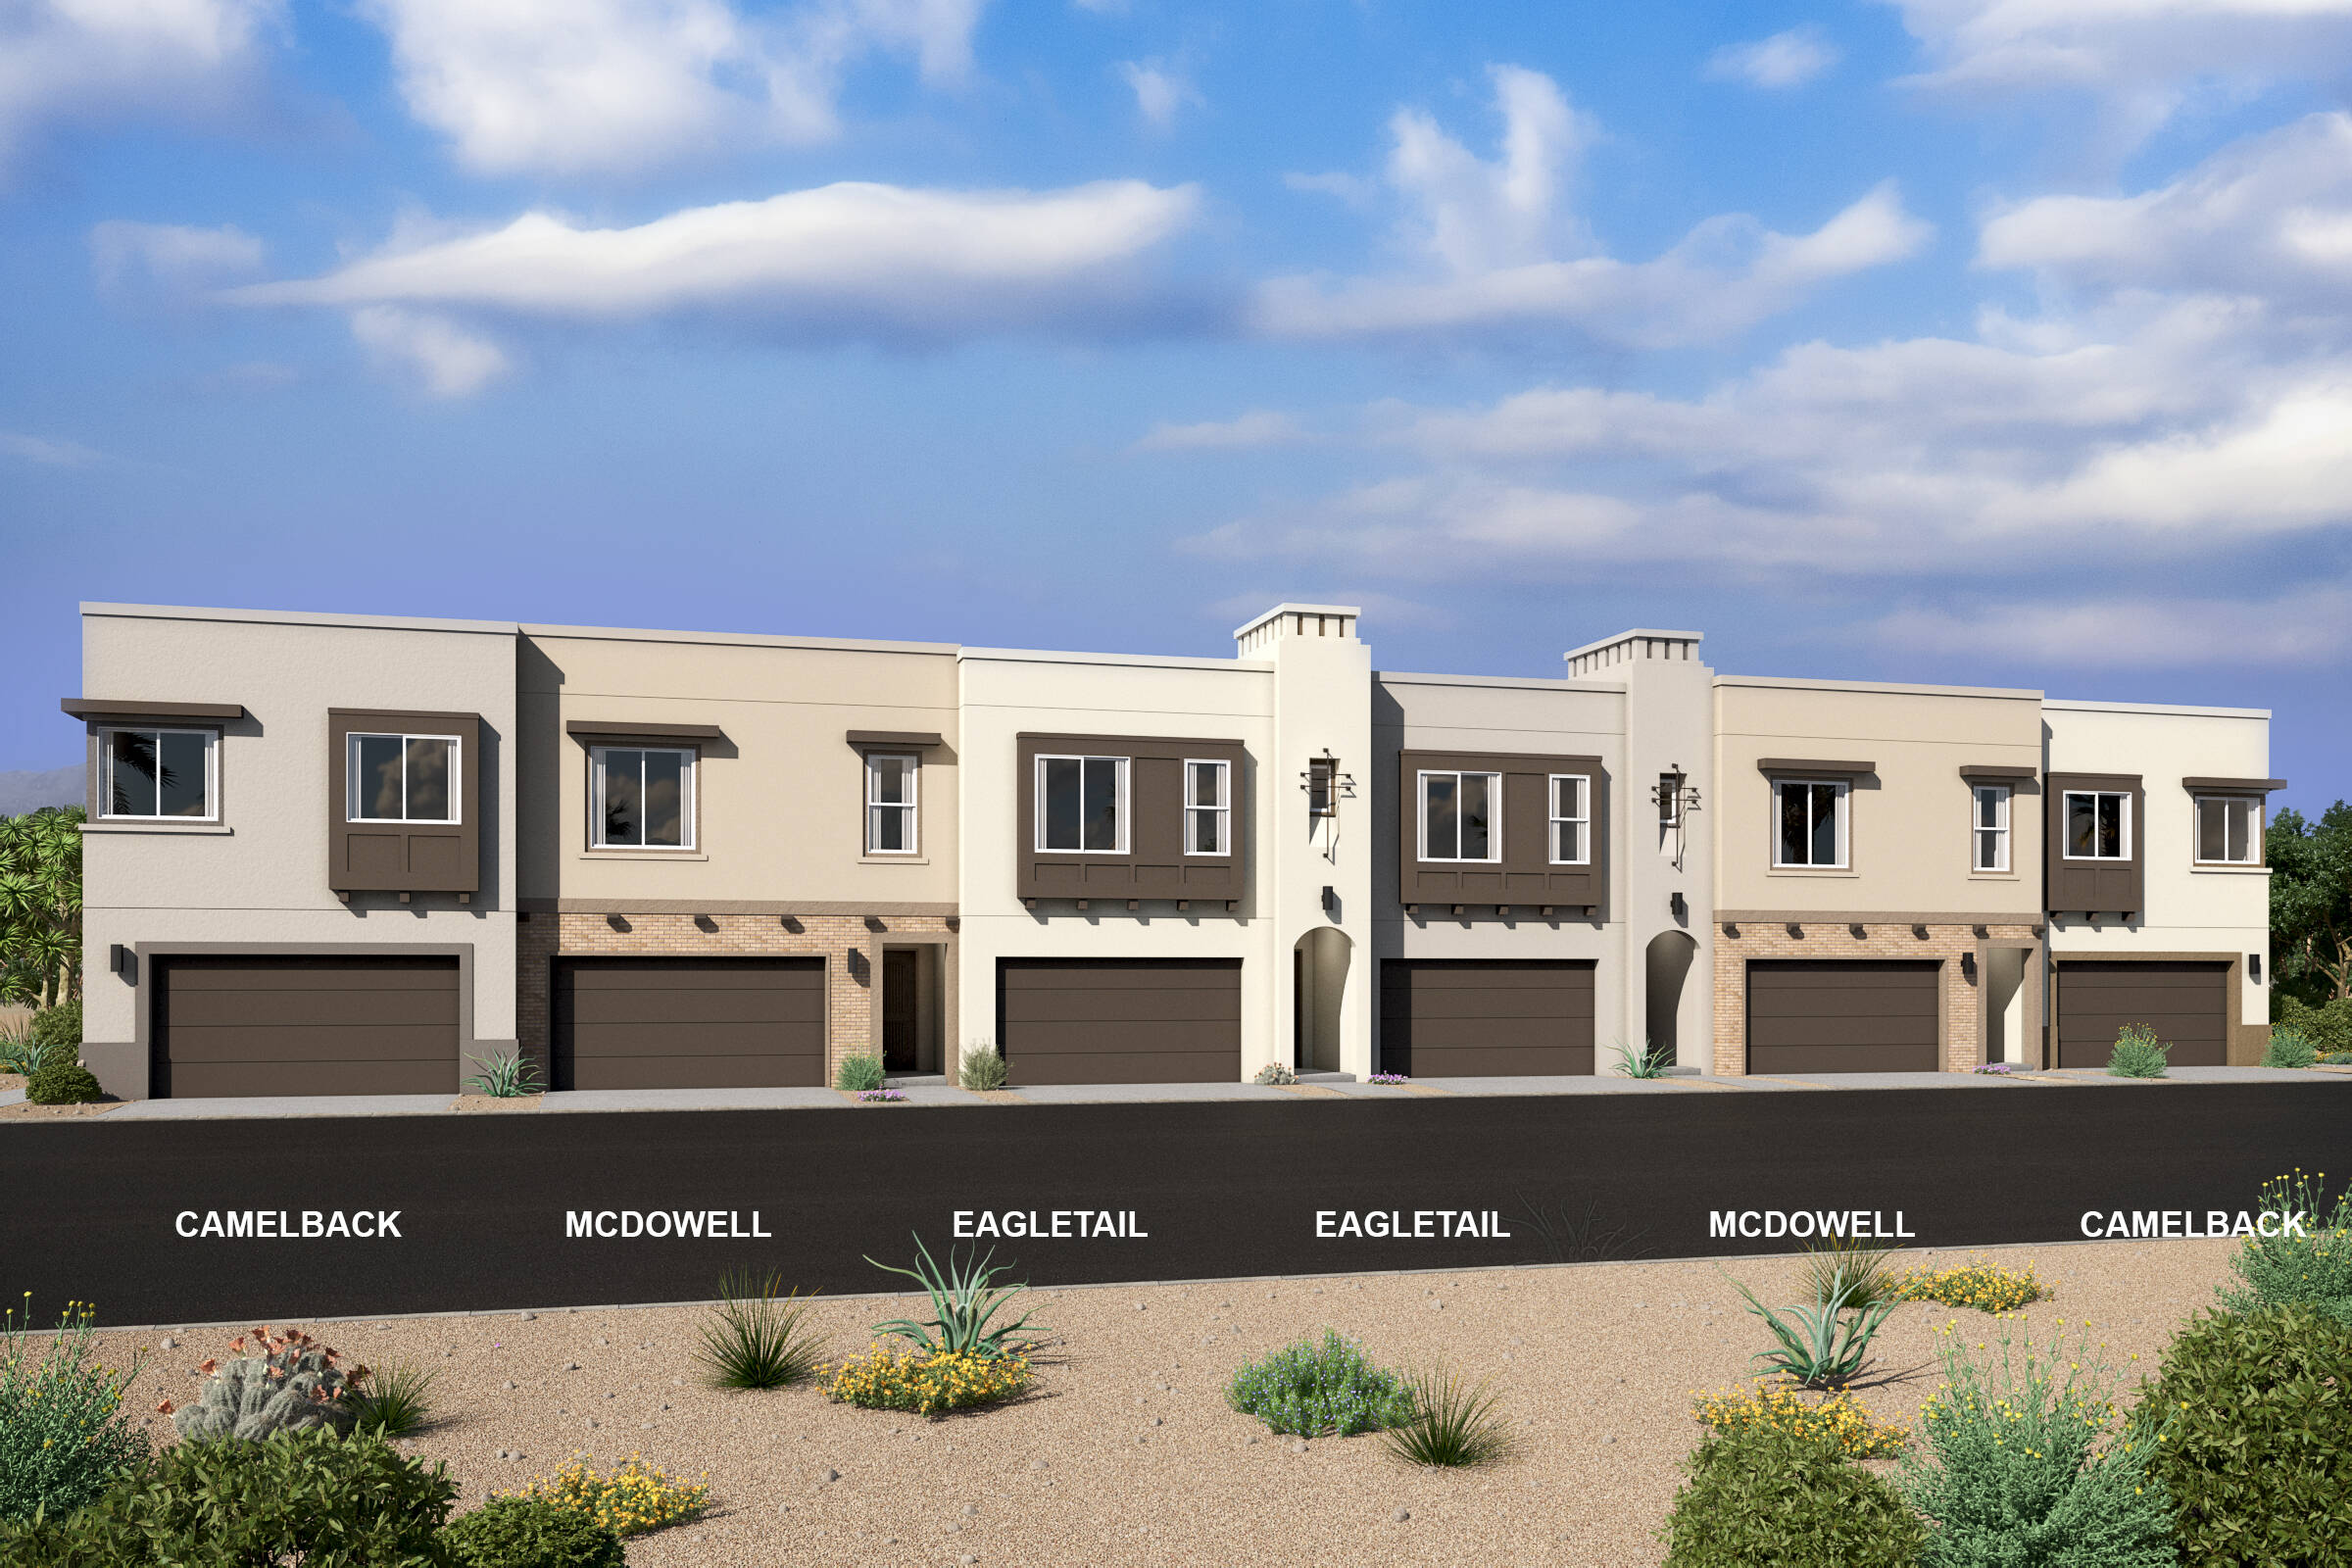 pinnacle at silverstone new scottsdale townhomes 6 plex